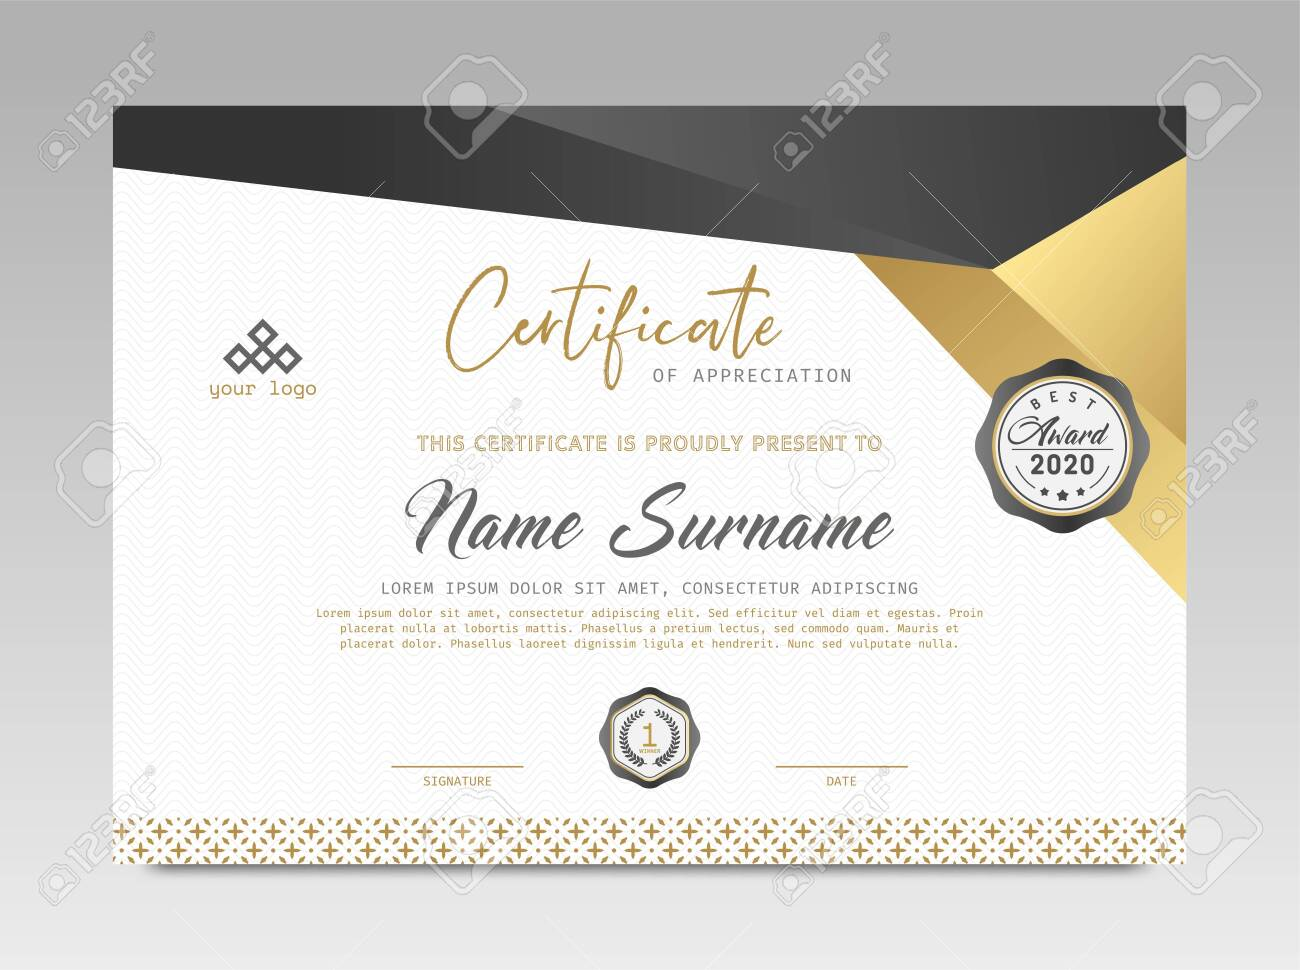 Modern Design Certificate. Black and Gold Certificate template awards diploma background vector modern design simple elegant and luxurious elegant. layout horizontal in A4 size - 155450675